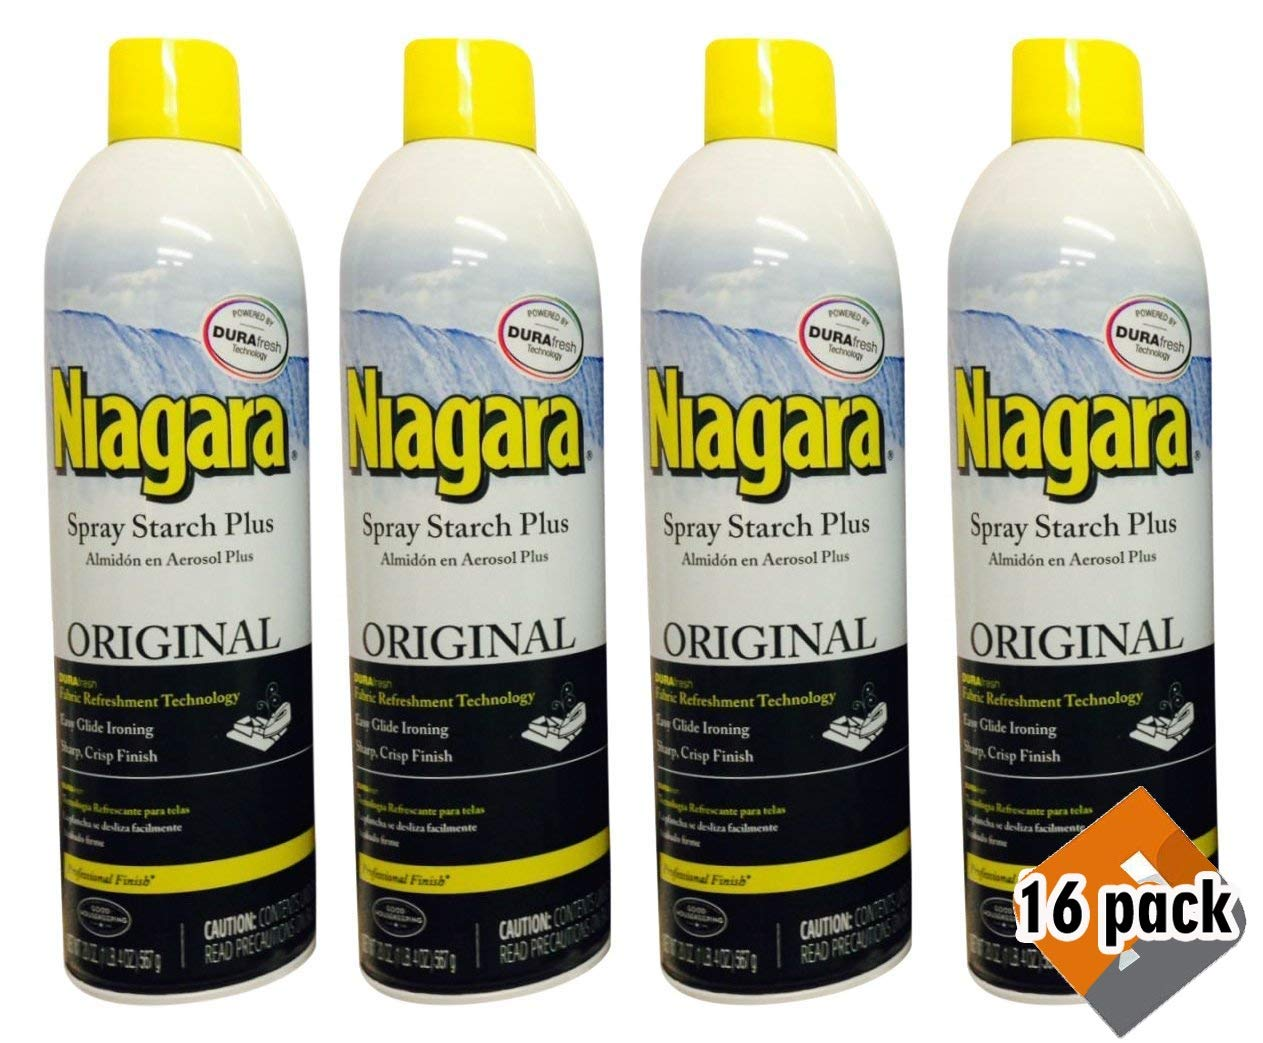 Niagara Spray Starch Crisp Finish, Sharp Look Without Excess Stiffness, 4 pack (16 count)